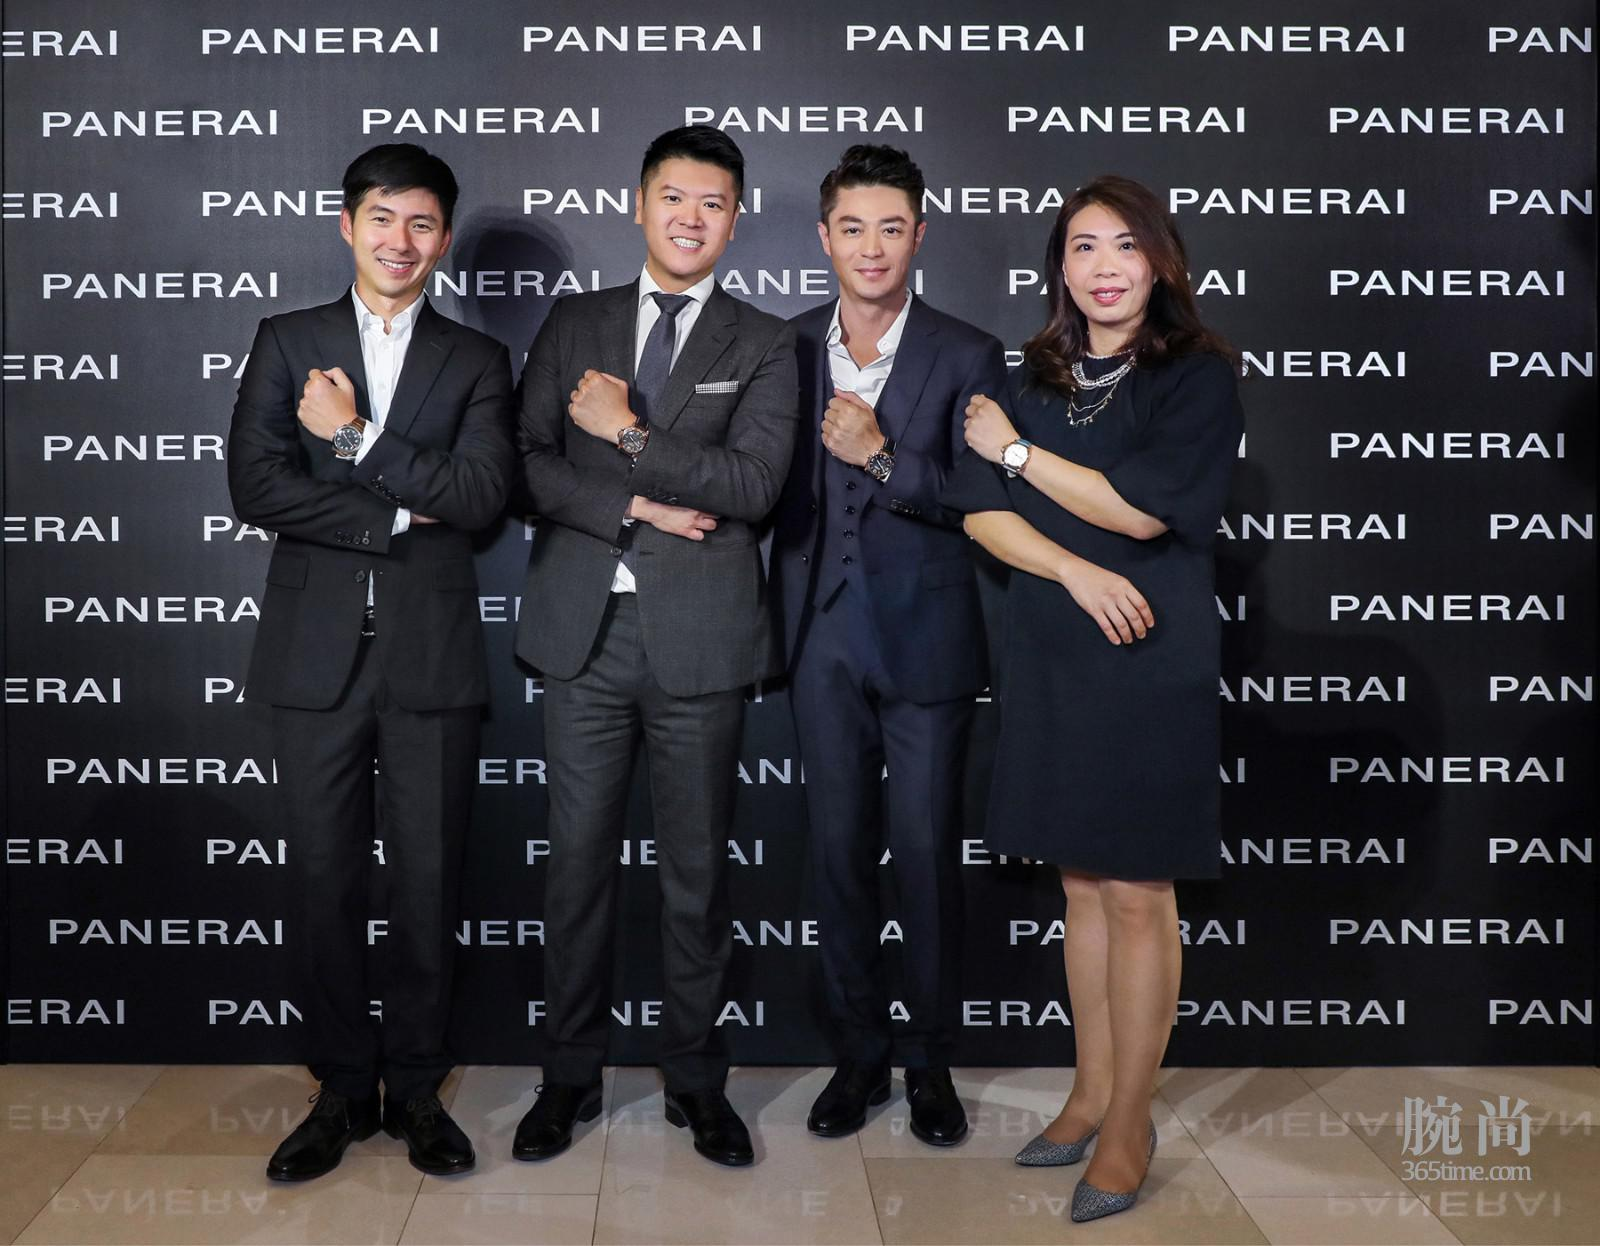 OFFICINE-PANERAI---SHANGHAI-IAPM-ROADSHOW---GUESTS.jpg